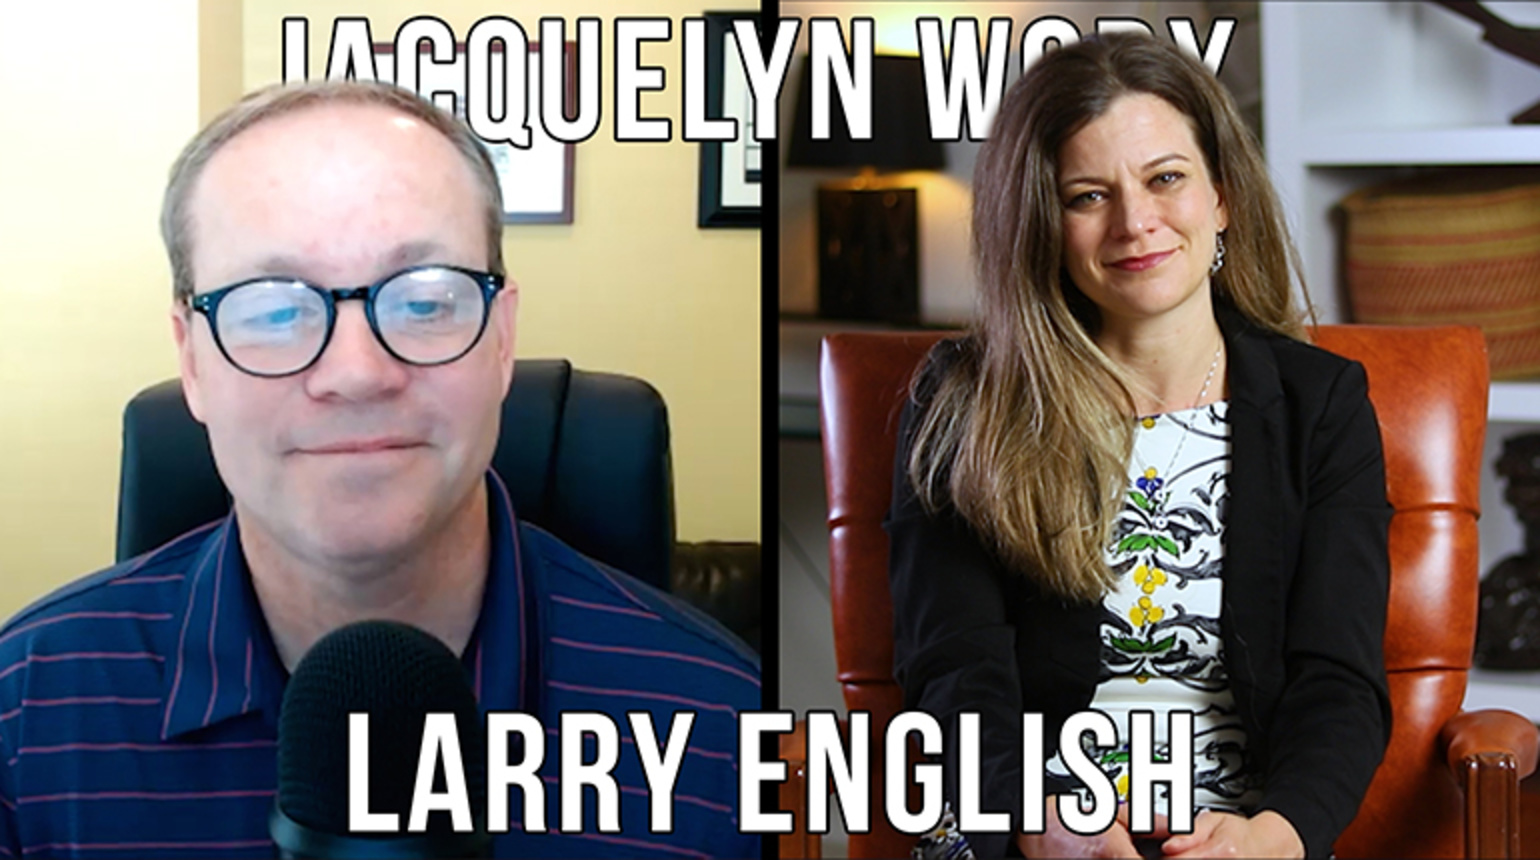 An Interview with Larry English - Jacquelyn Worx Episode 5